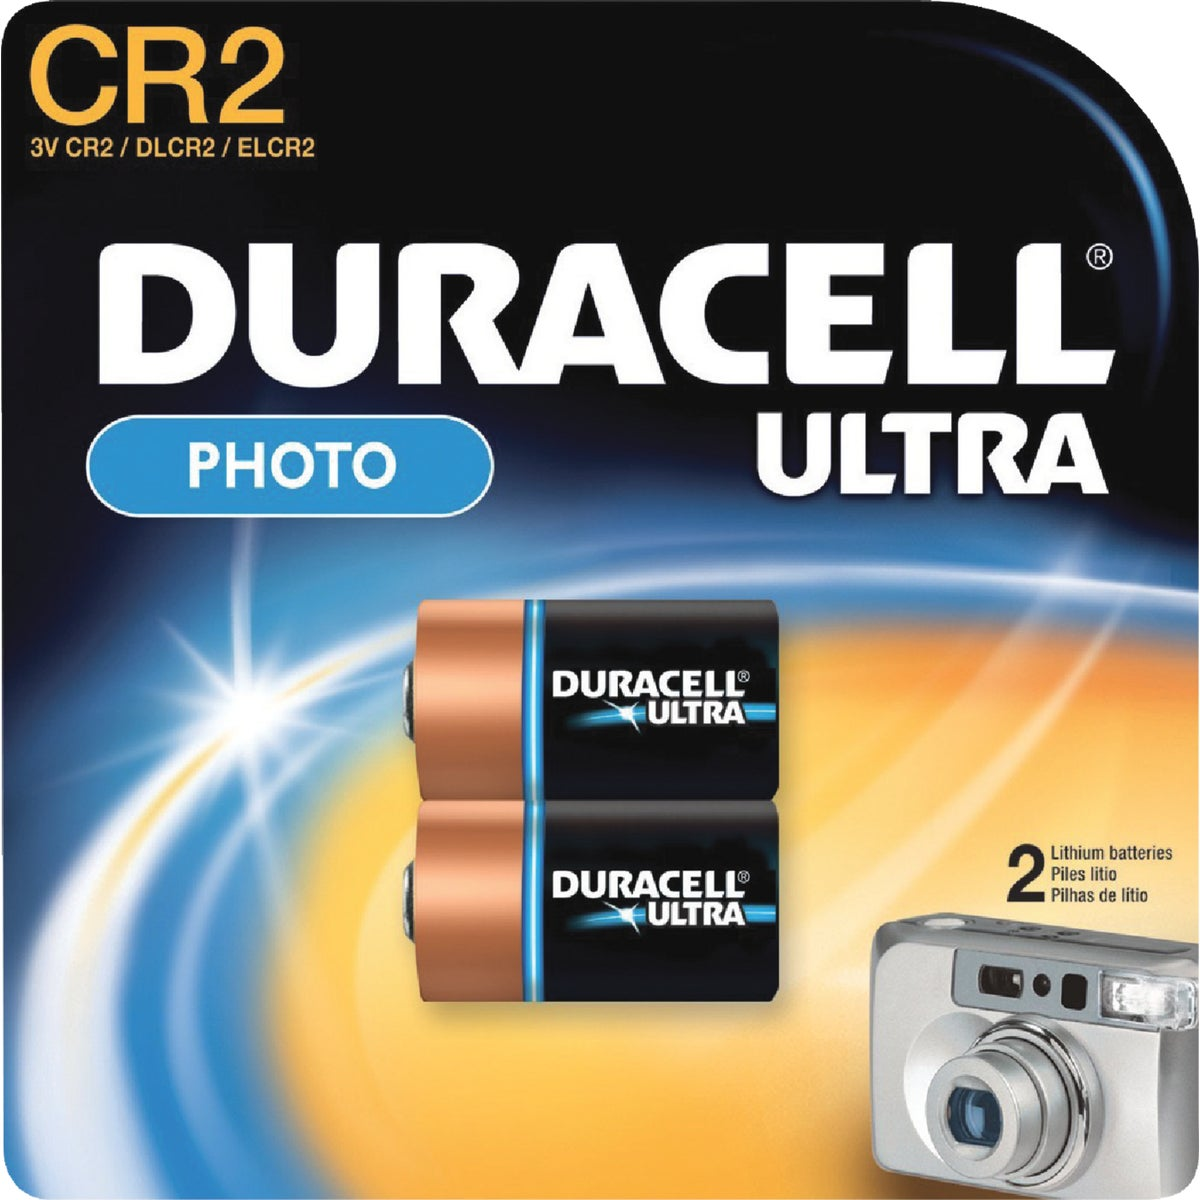 2PK CR2 3V CAM BATTERY - 28387 by P & G  Duracell